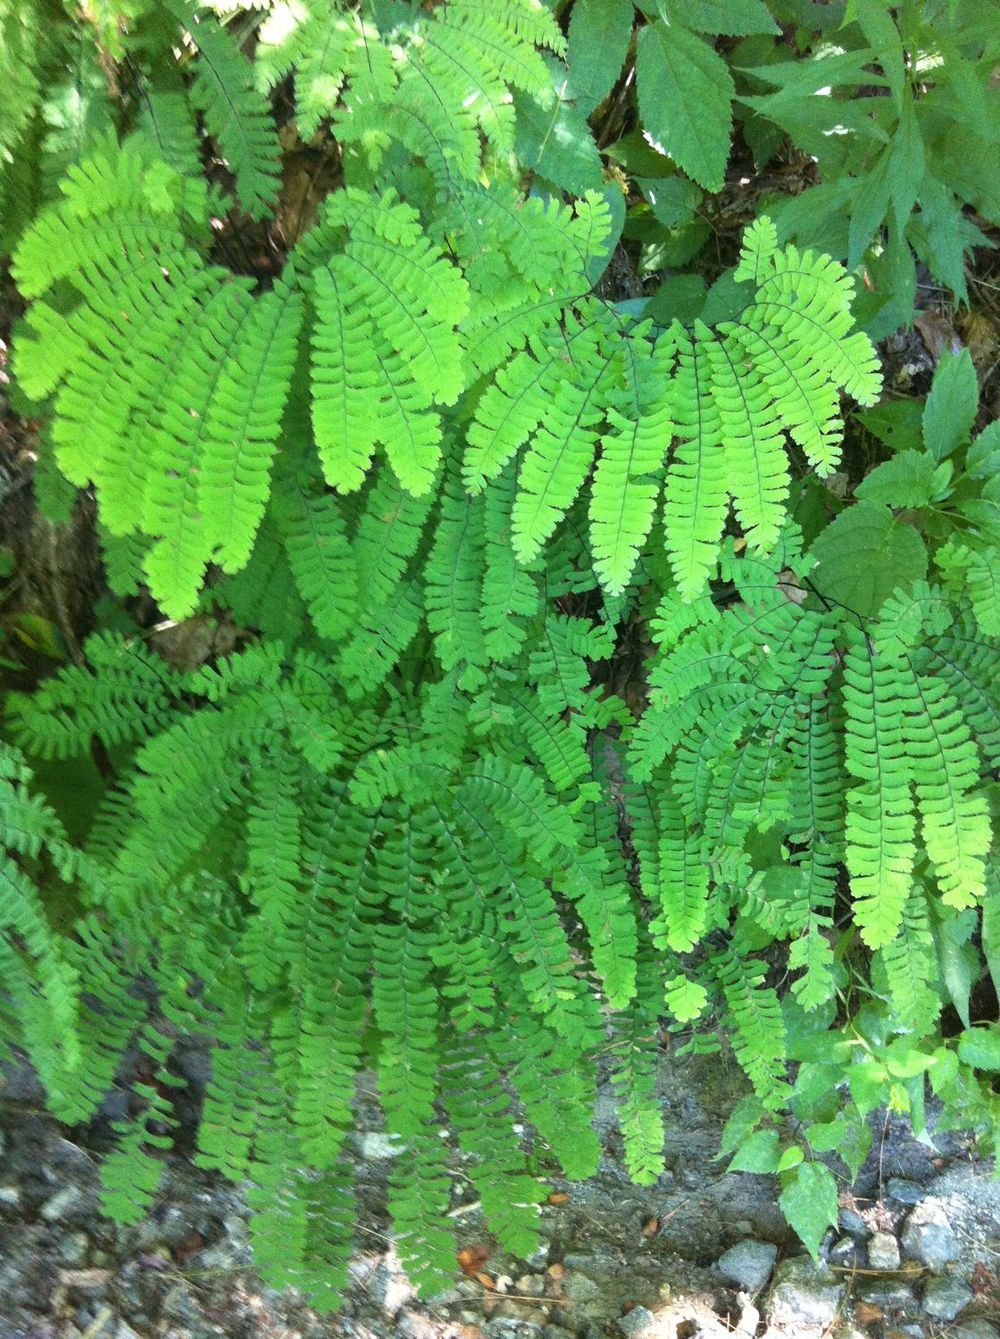 Northern maidenhair